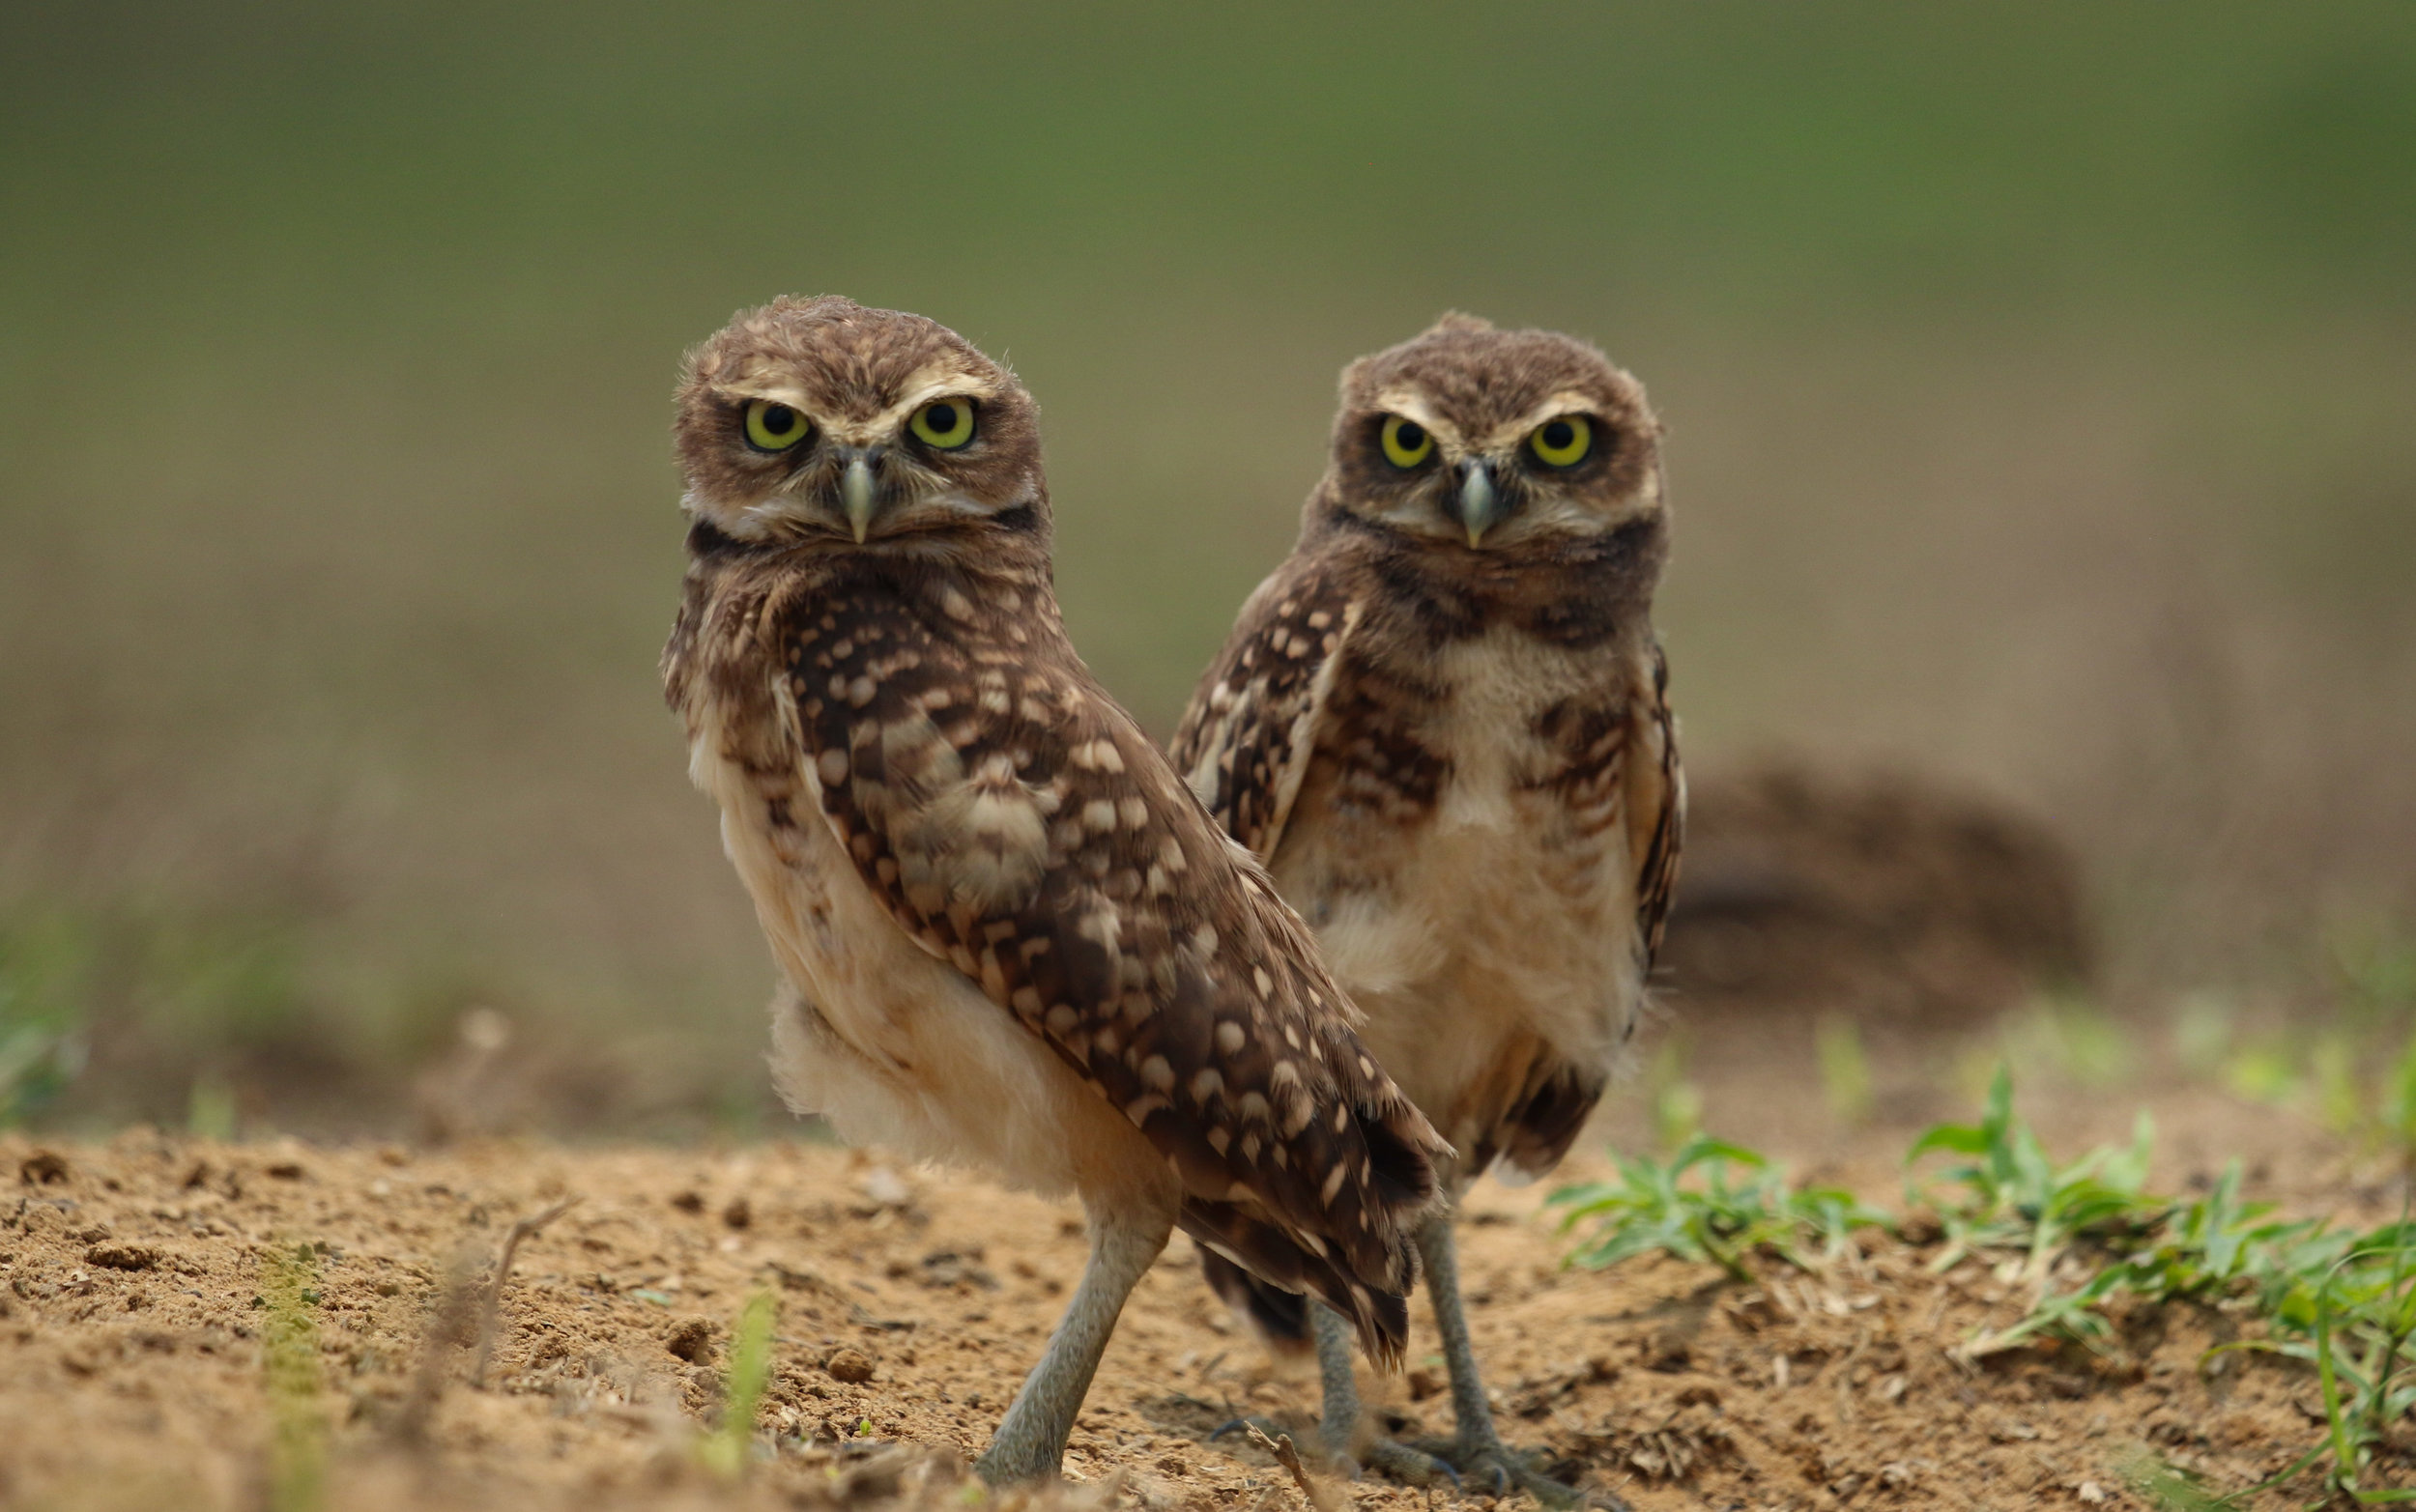 Burrowing owls staring at camera Llanos Colombia by Millie Kerr-1.jpg